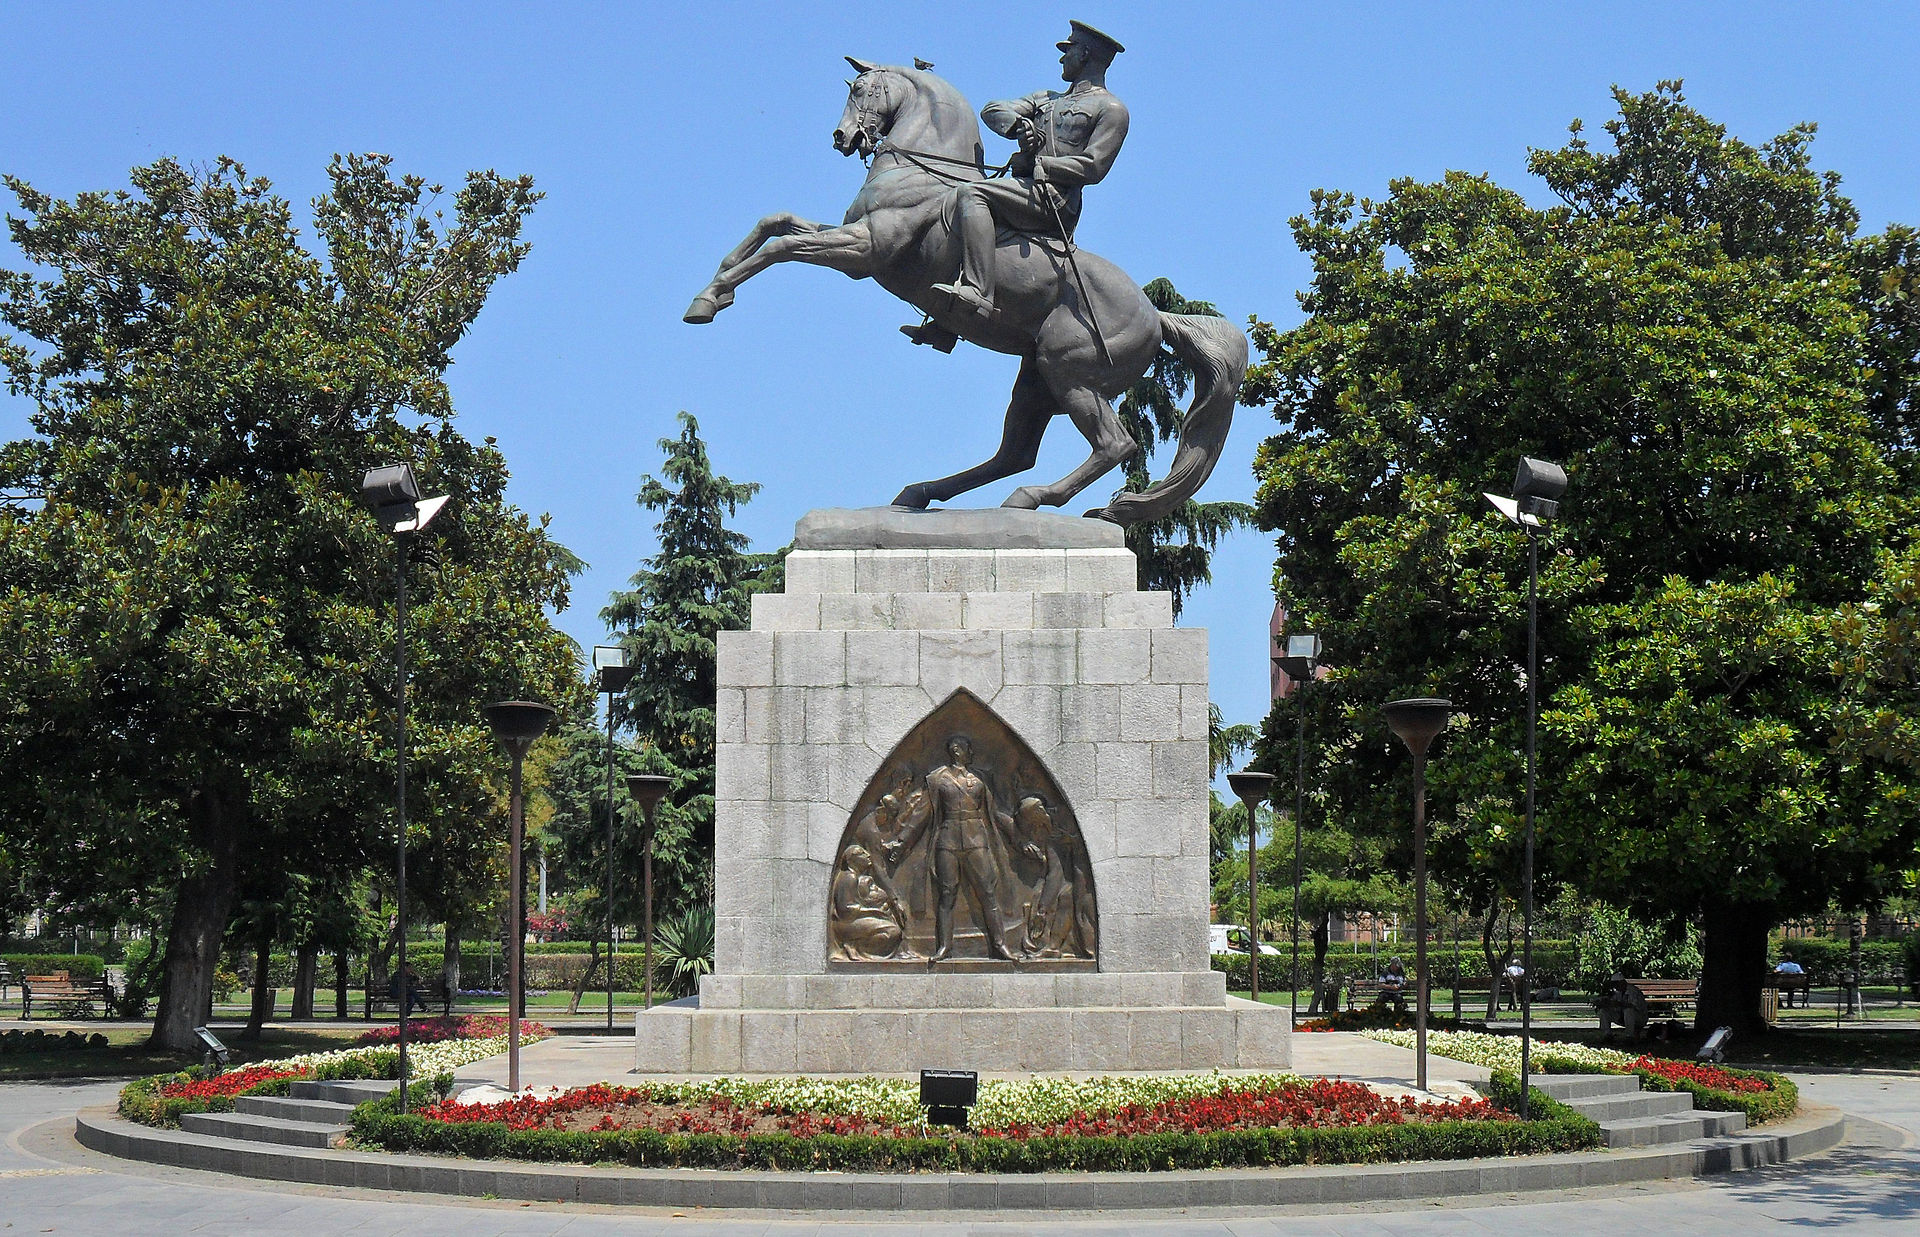 Statue of Honor (Atatürk Monument),1932, Samsun, Turkey